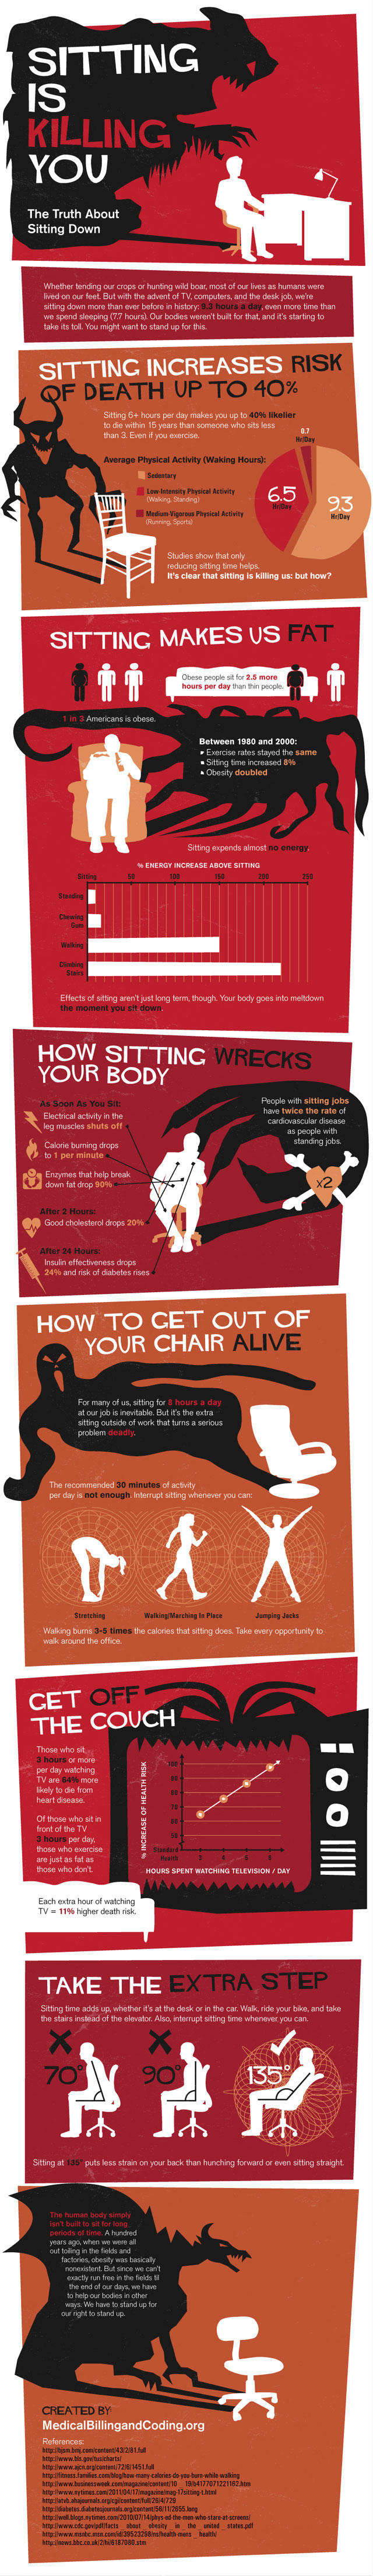 sitting-down-infographic